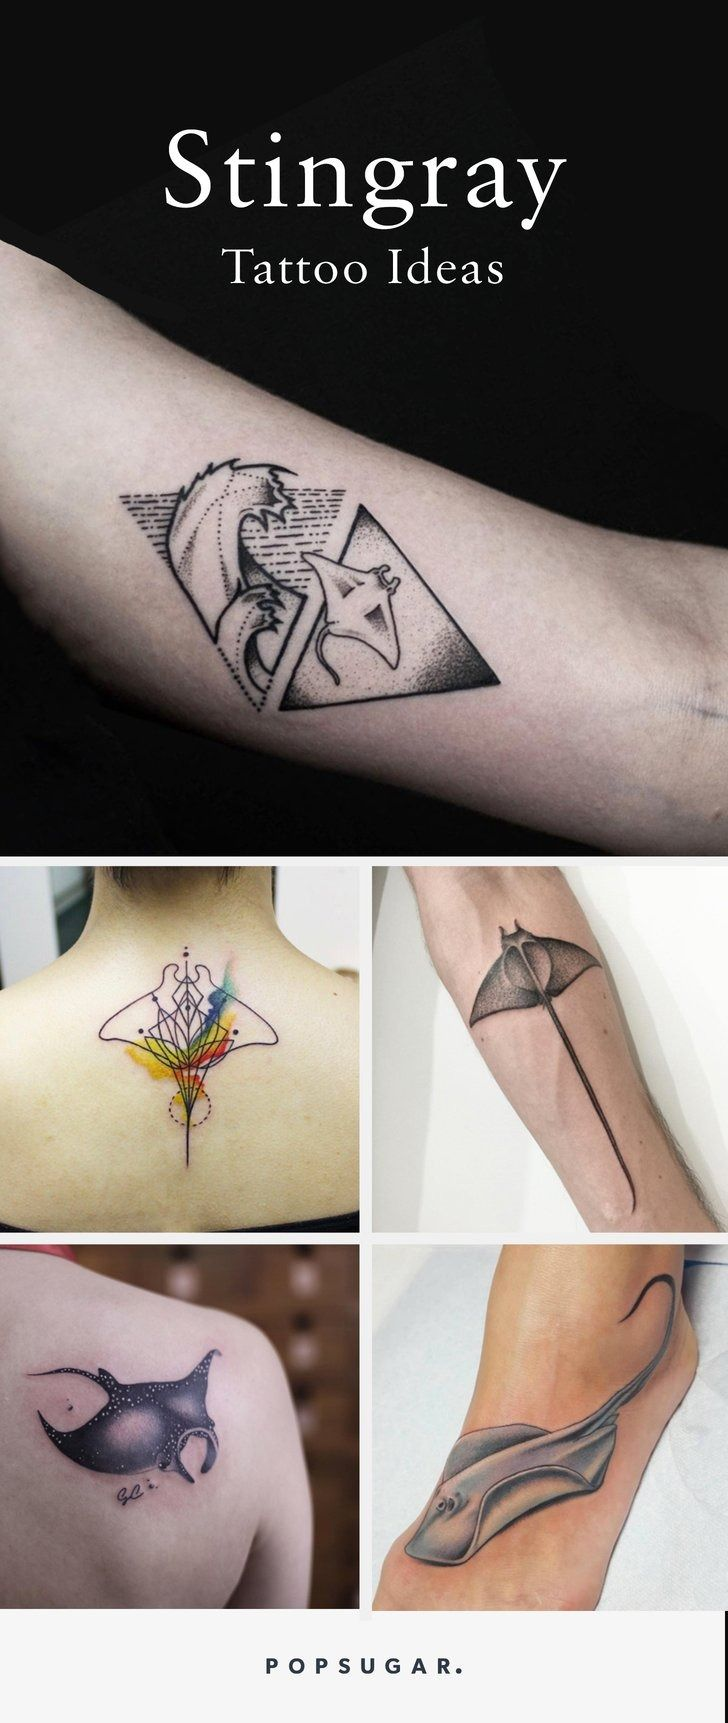 12 Gorgeous Stingray Tattoos You'll Want to Get Inked, ASAP